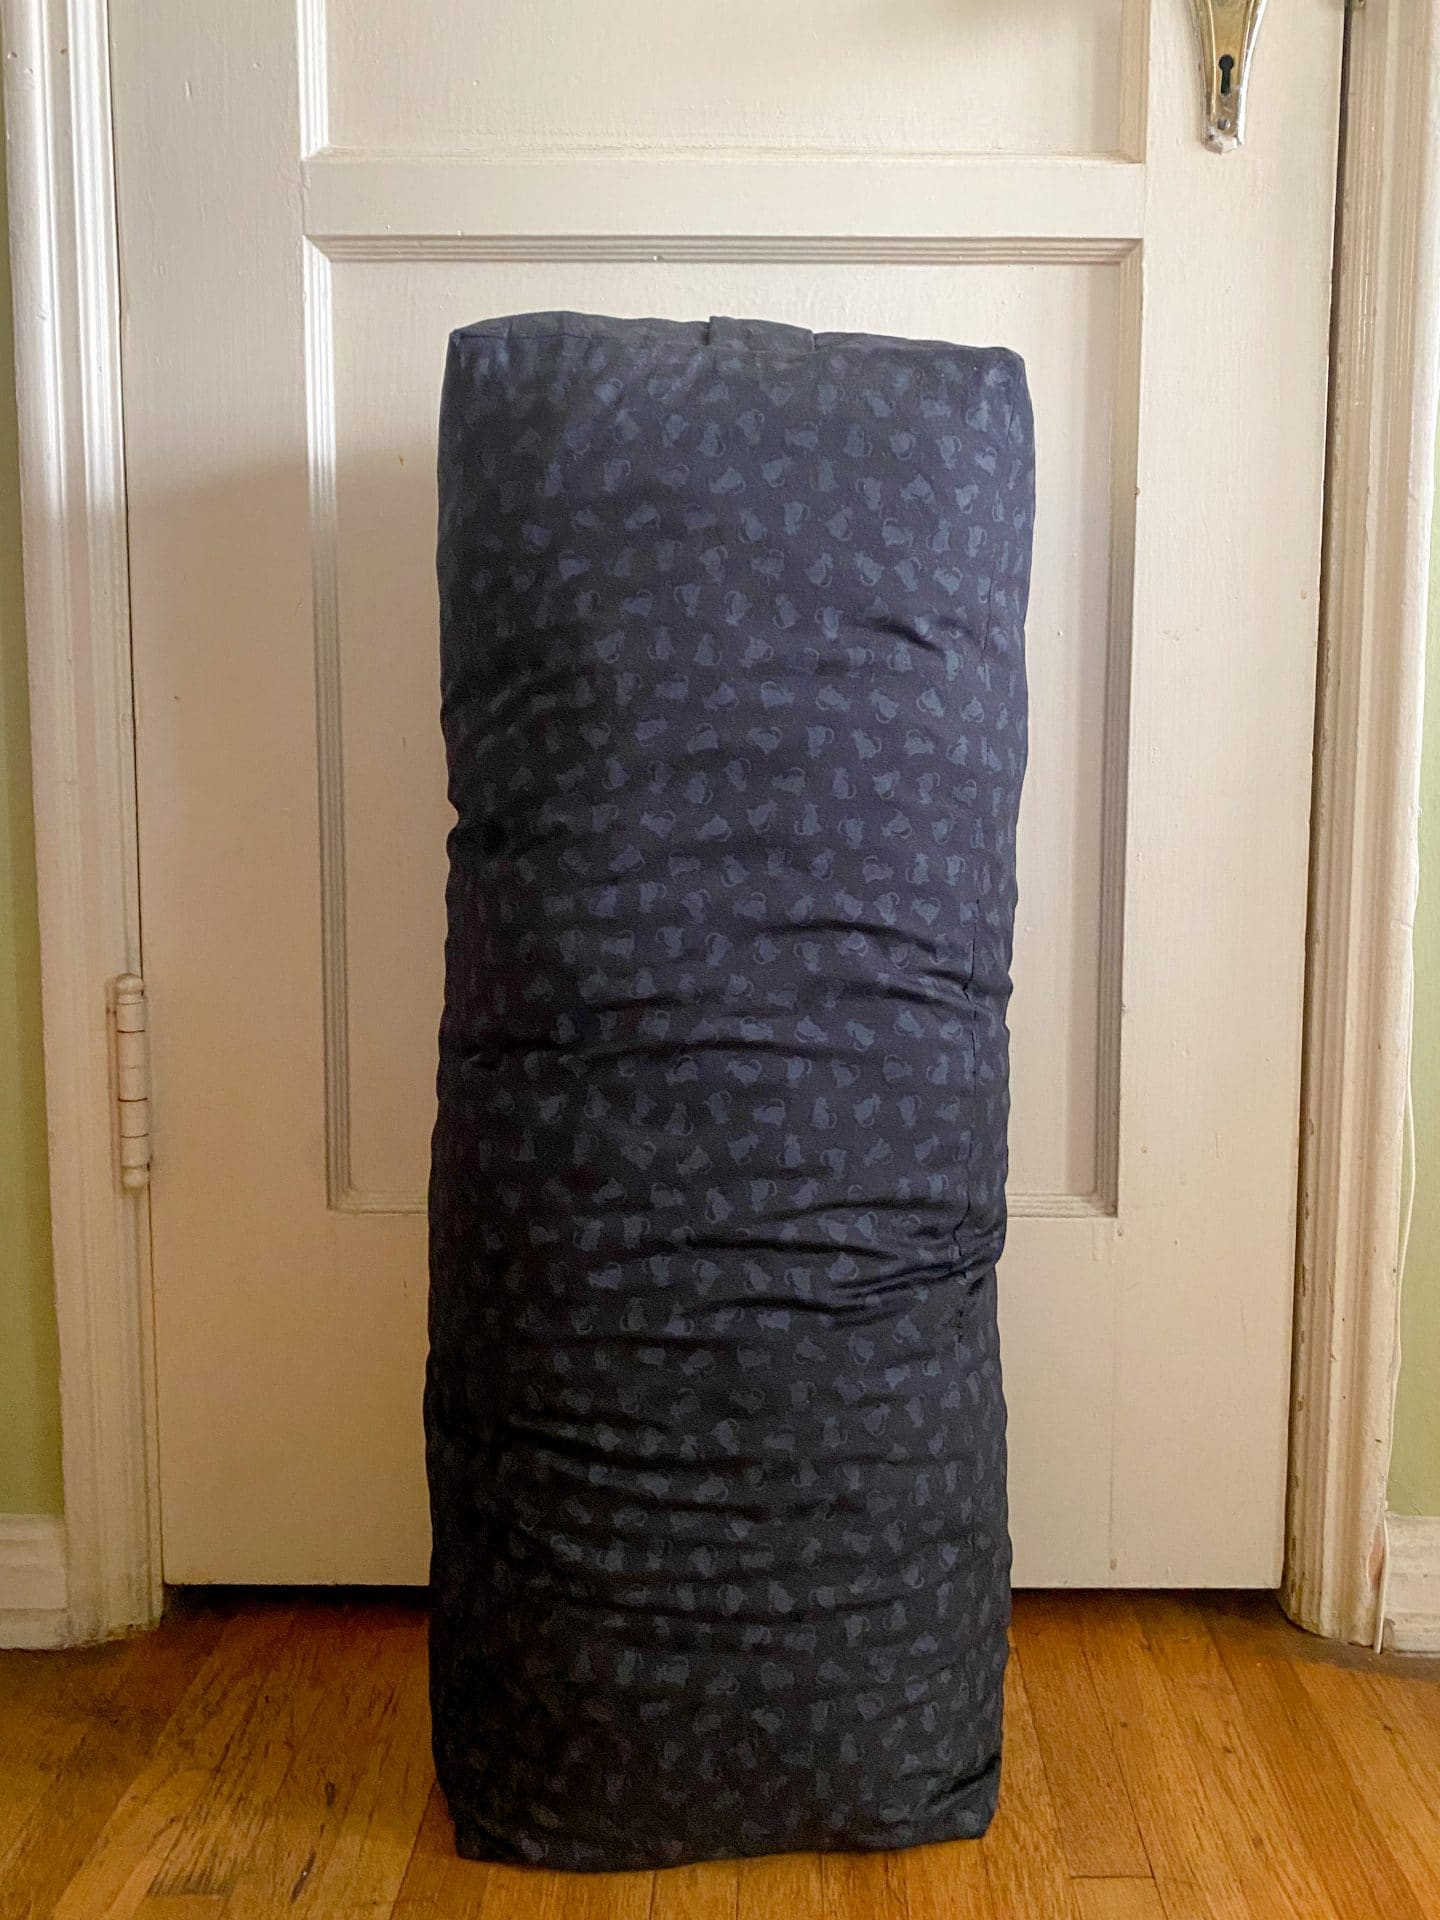 Image of a yoga bolster made with black fabric with dark gray kitty print propped against an old fashioned door.